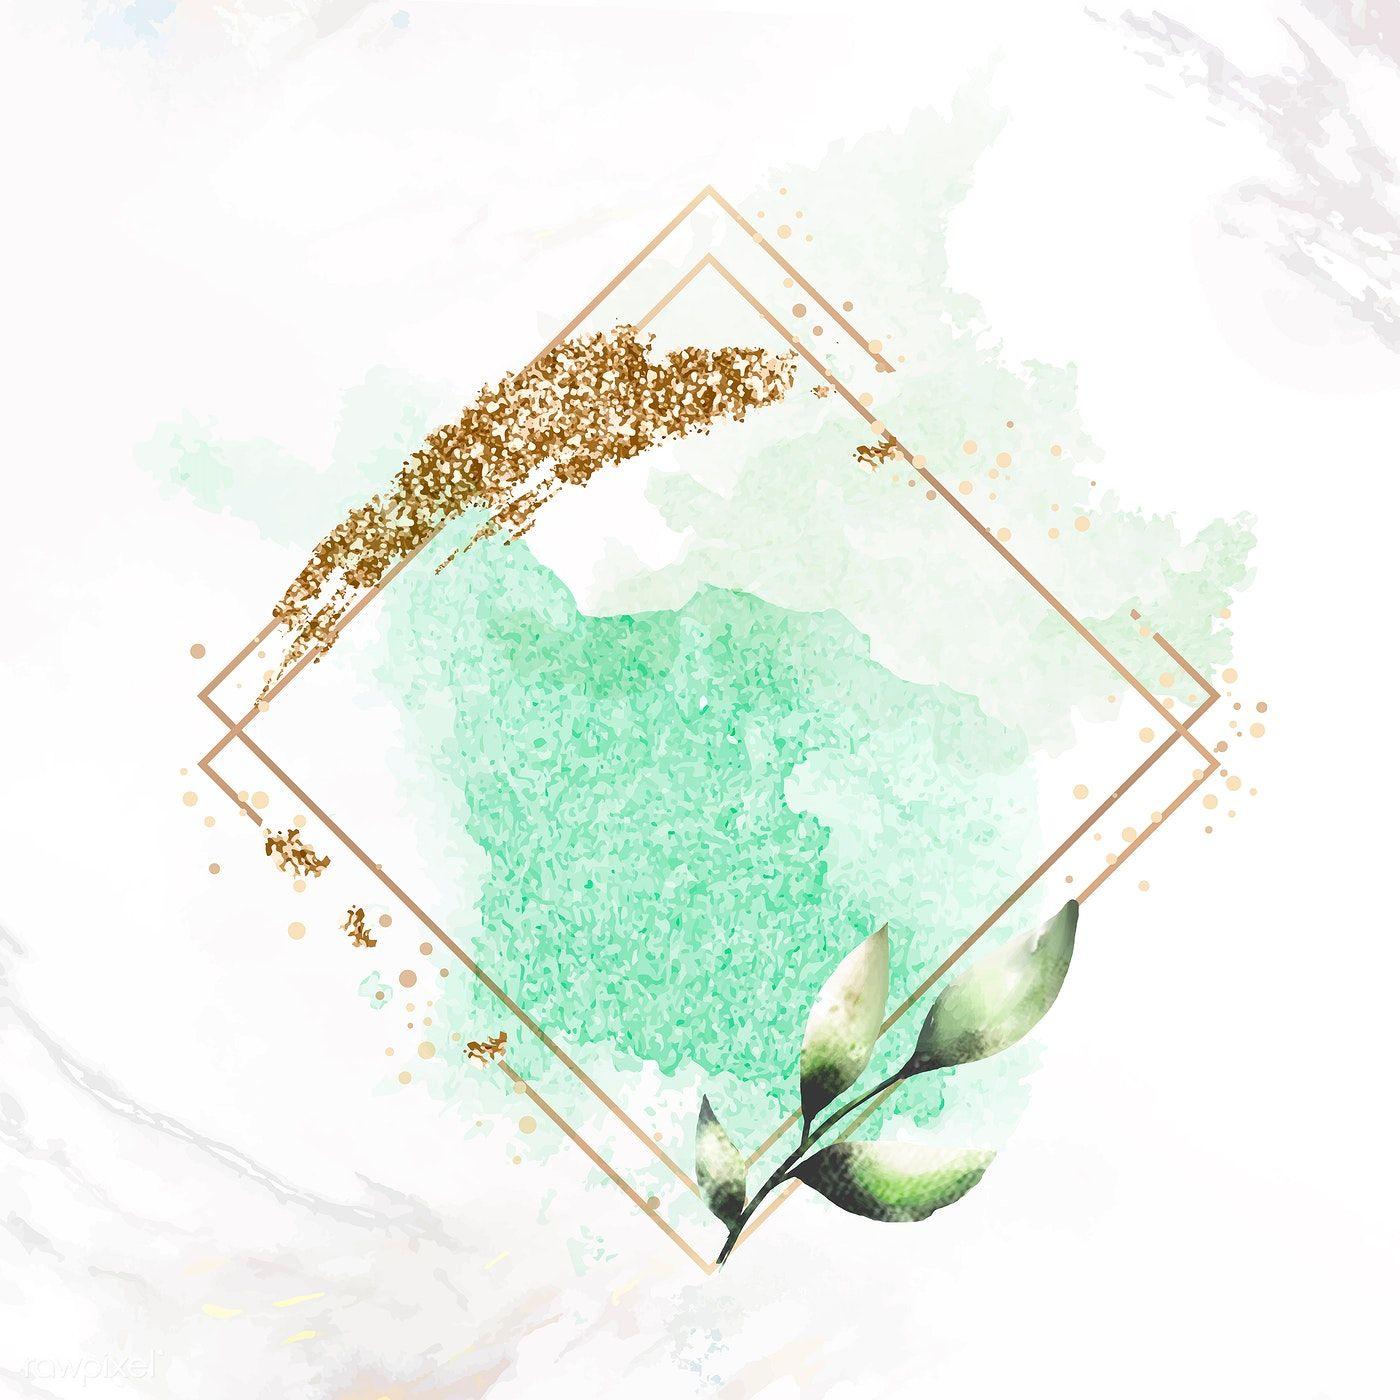 Download premium vector of Gold rhombus frame on green